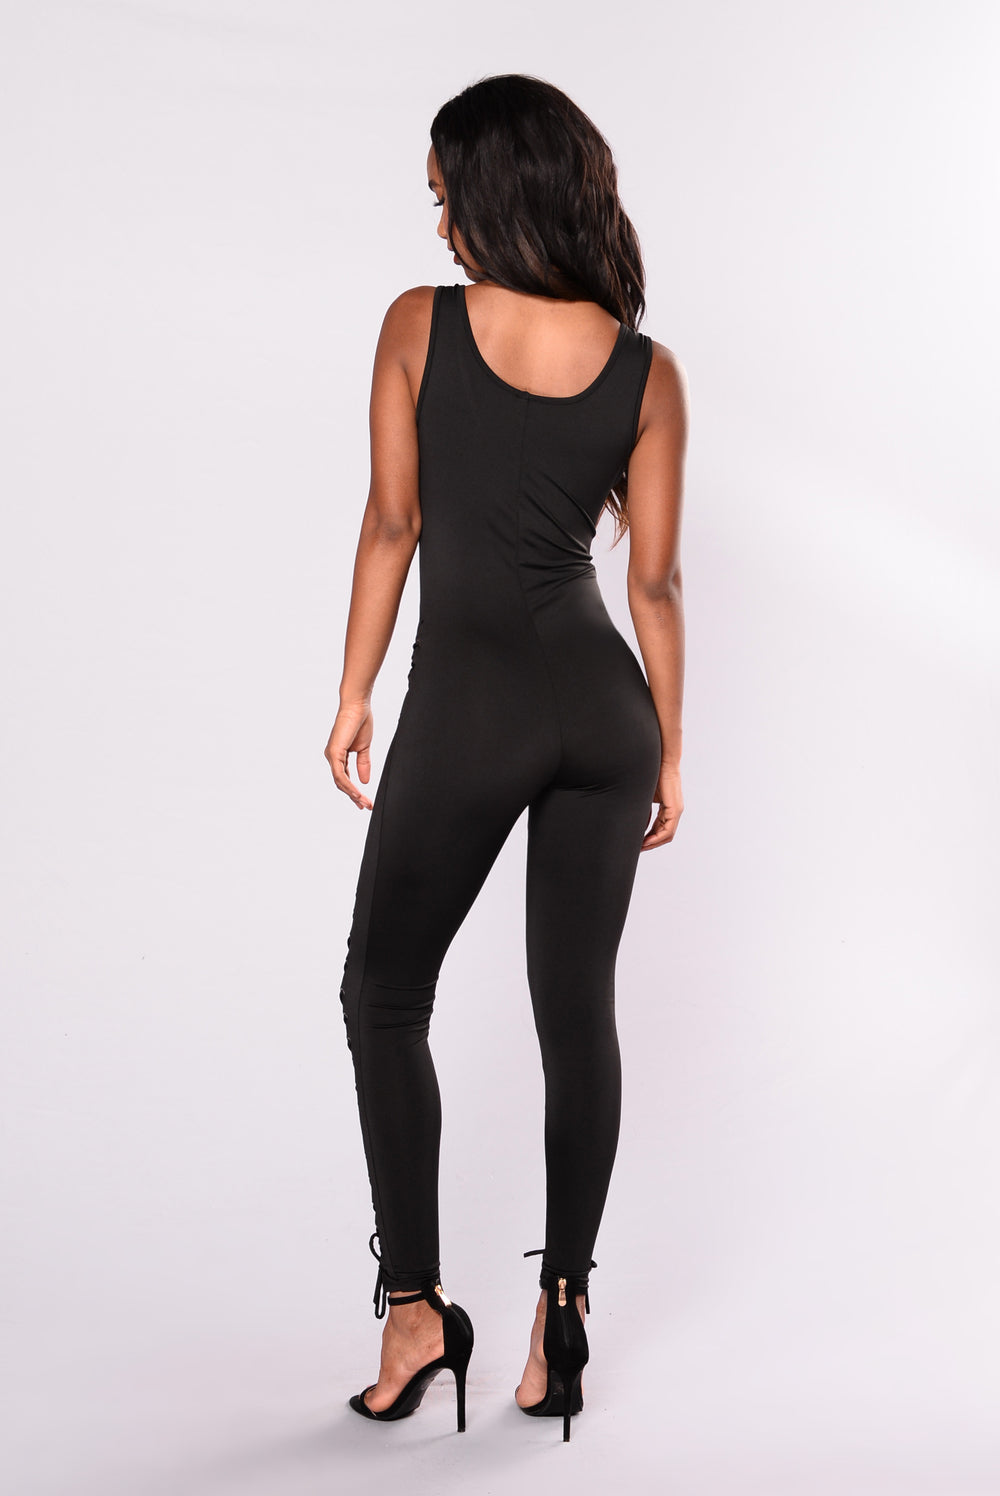 TGIF Lace Up Jumpsuit - Black